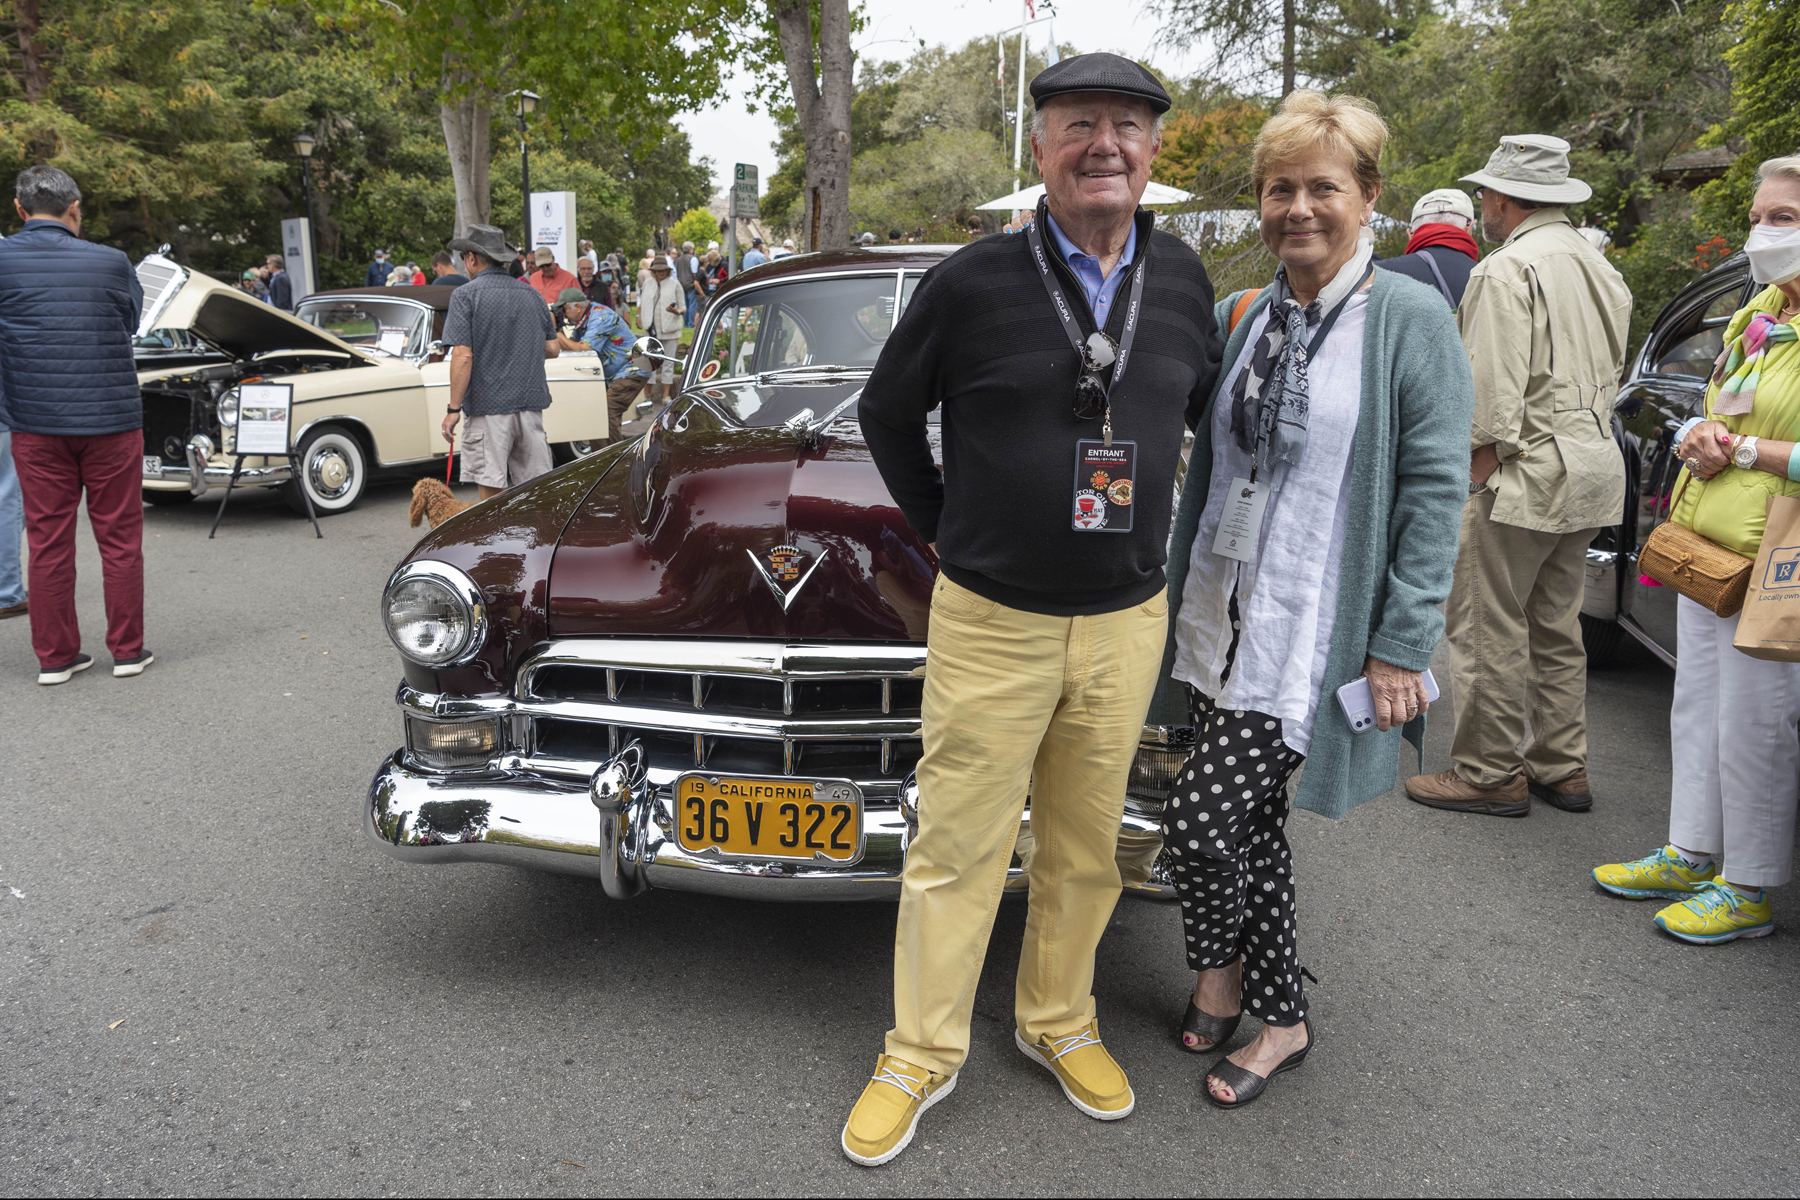 Owners of 1949 Cadillac Series 62 Sedanette standing in front of the car